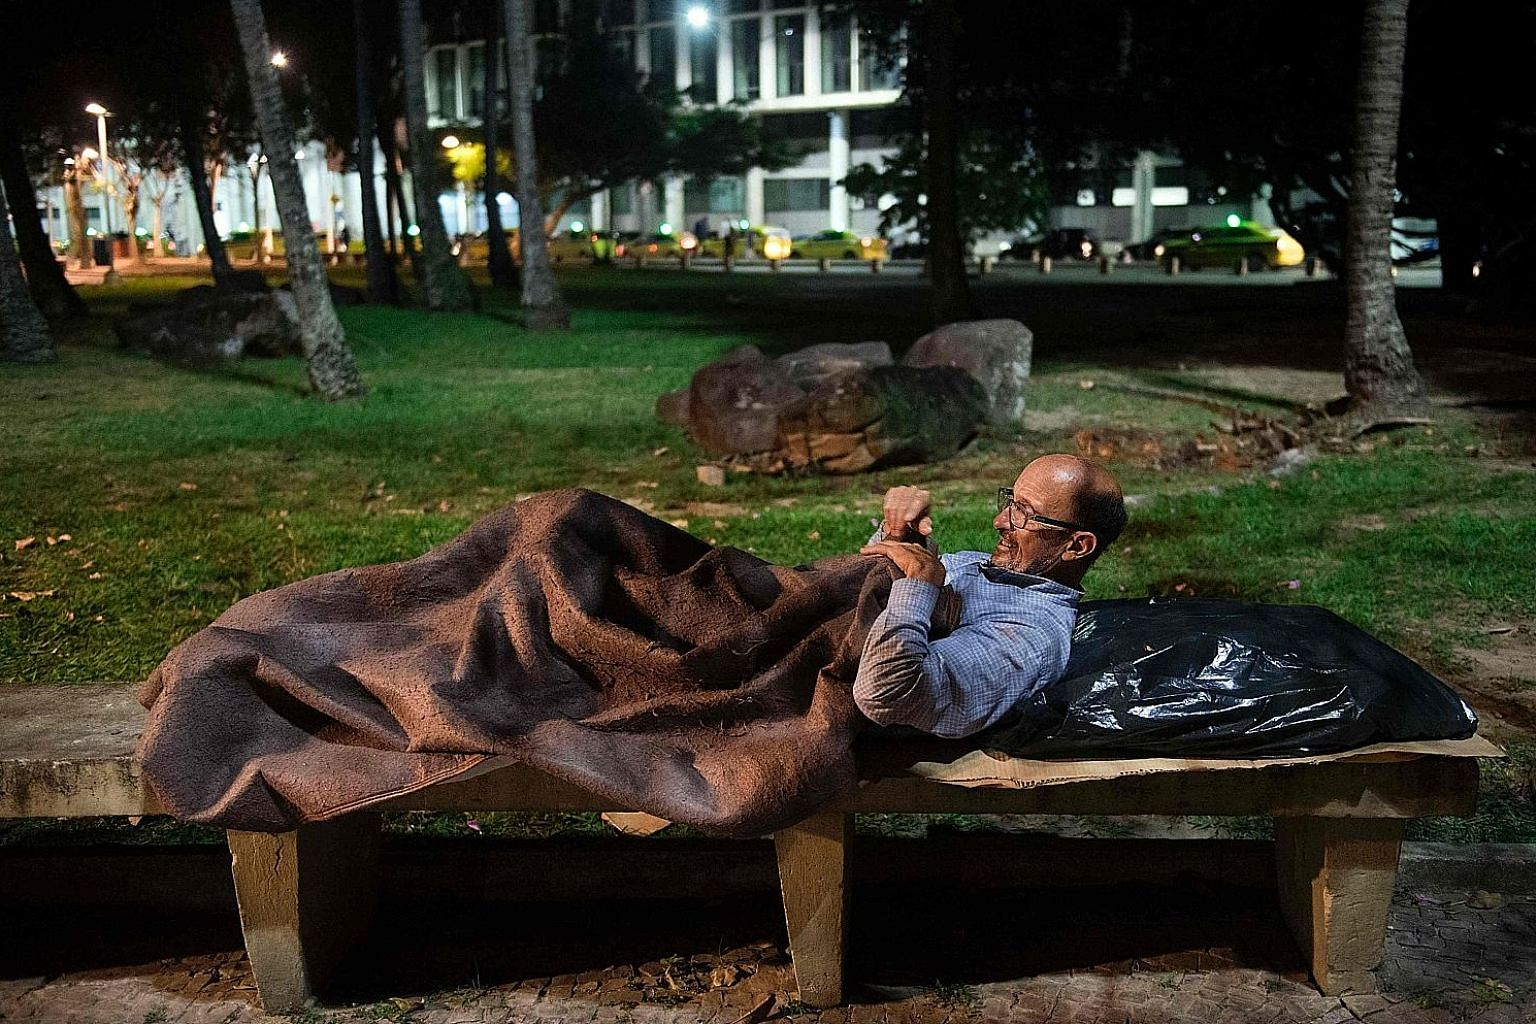 Mr Vilmar Mendonca, who worked as a human resources director for several companies in Brazil, lost his job in 2015 and has been living on the streets for 11/2 years now.